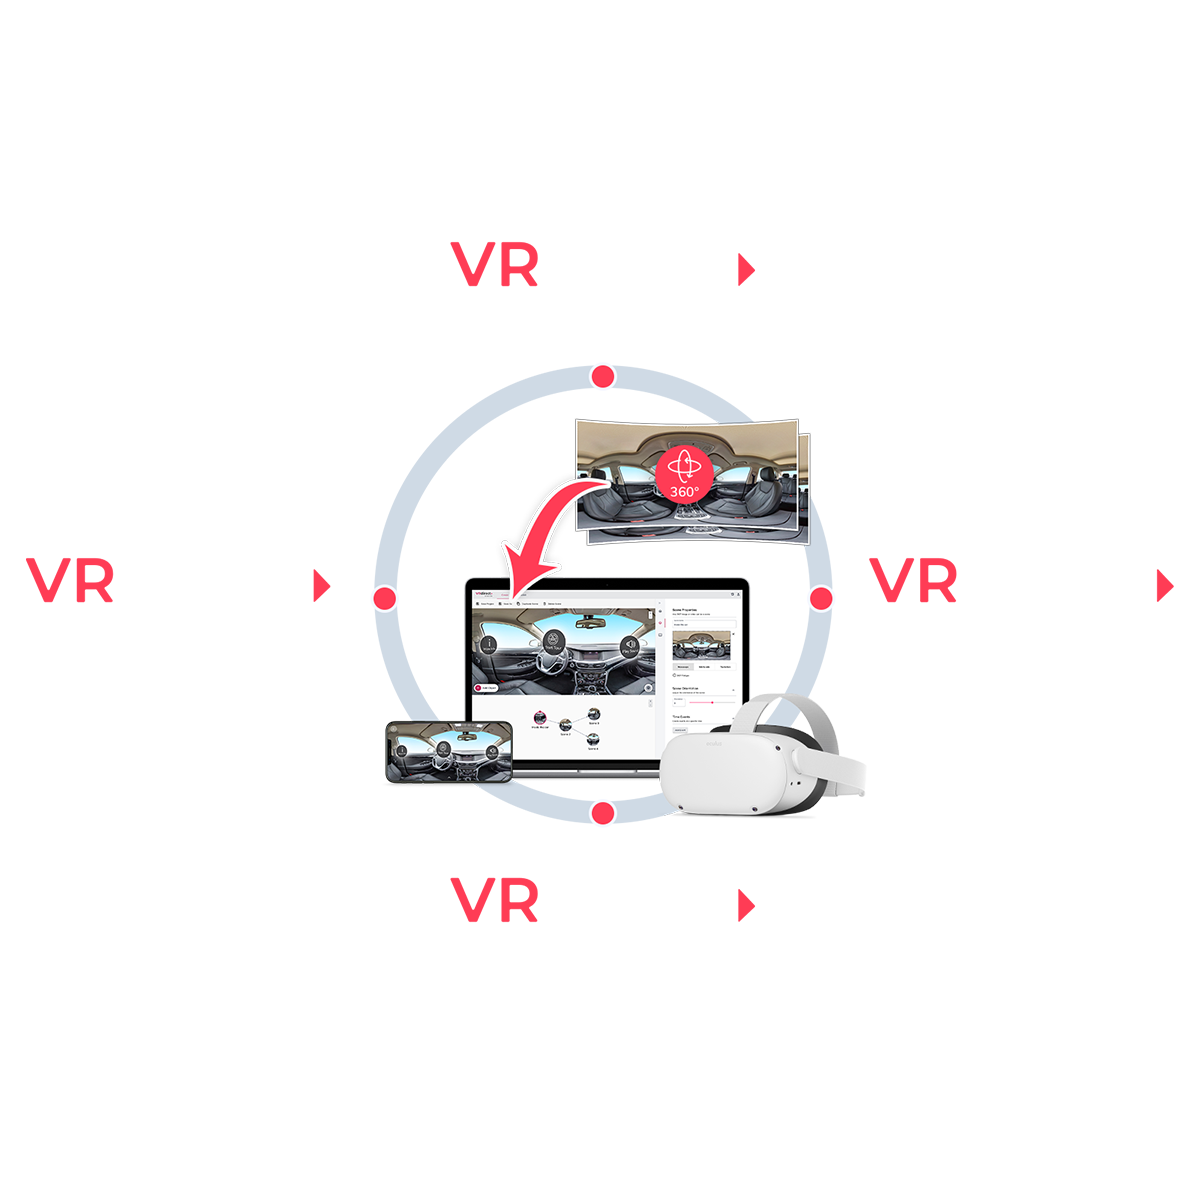 VRdirect Cloud Stability Performance